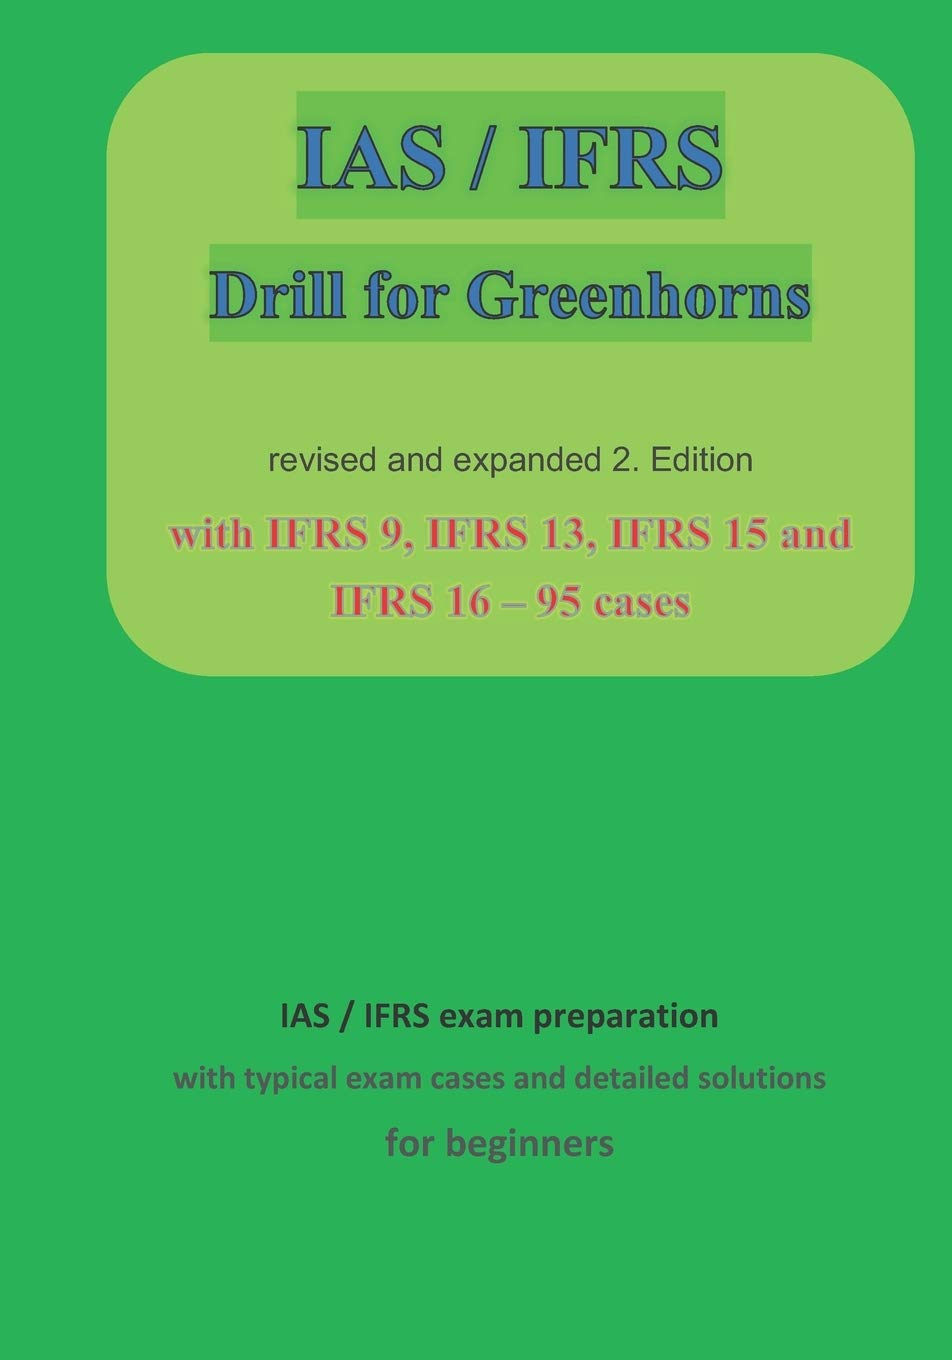 IAS   IFRS For Greenhorns  2. Edition Revised And Expanded With IFRS 9 IFRS13IFRS 15 And IFRS 16